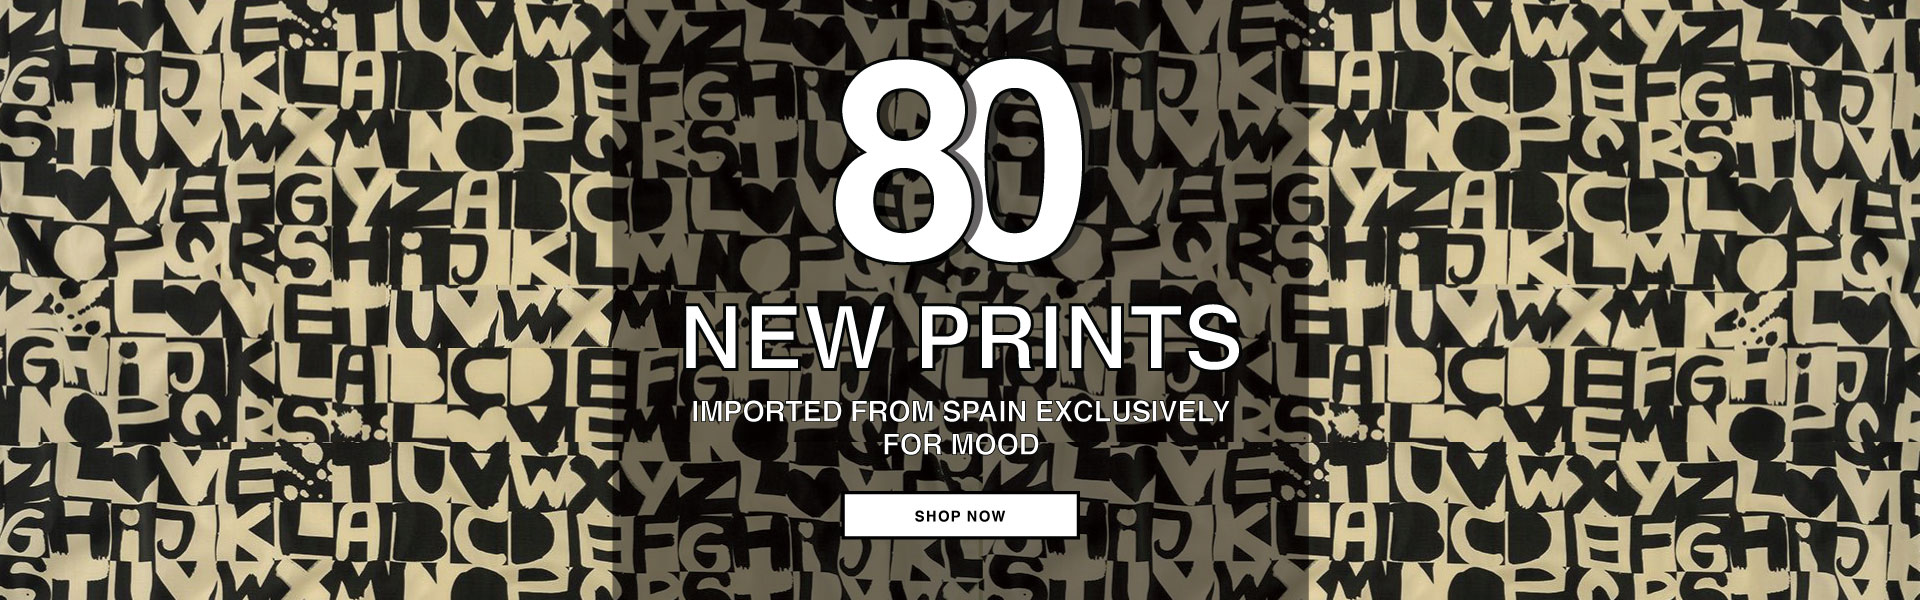 Explore 80 New Mood Exclusive Prints Imported from Spain! Shop Now!